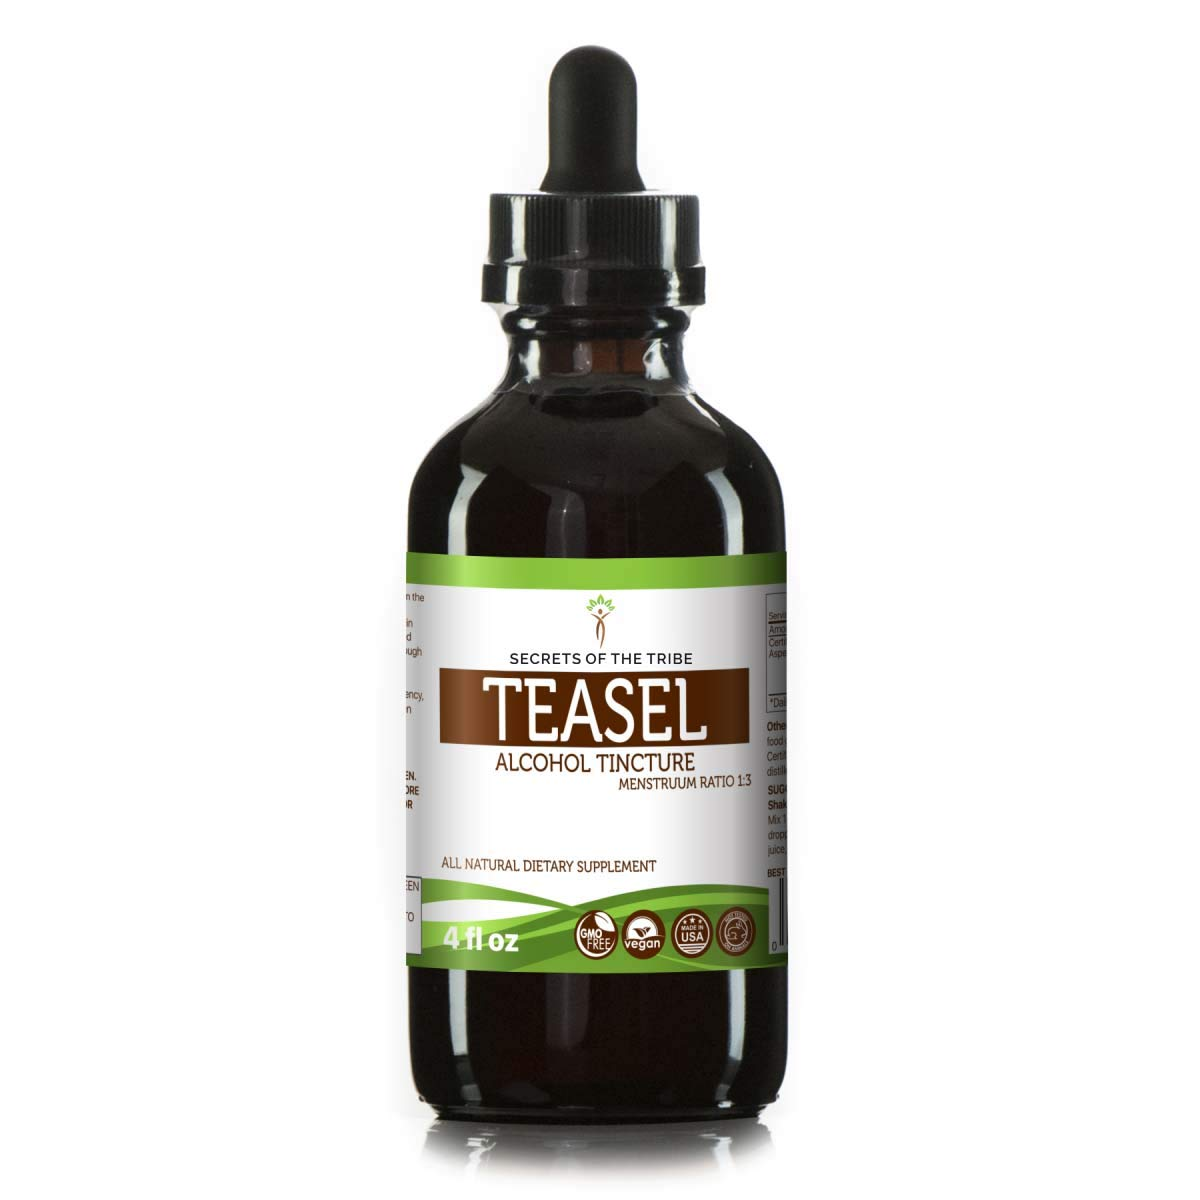 Teasel Alcohol Liquid Extract, Organic Teasel Dipsacus fullonum, Dipsacus sylvestris Dried Root Tincture Supplement 4 FL OZ